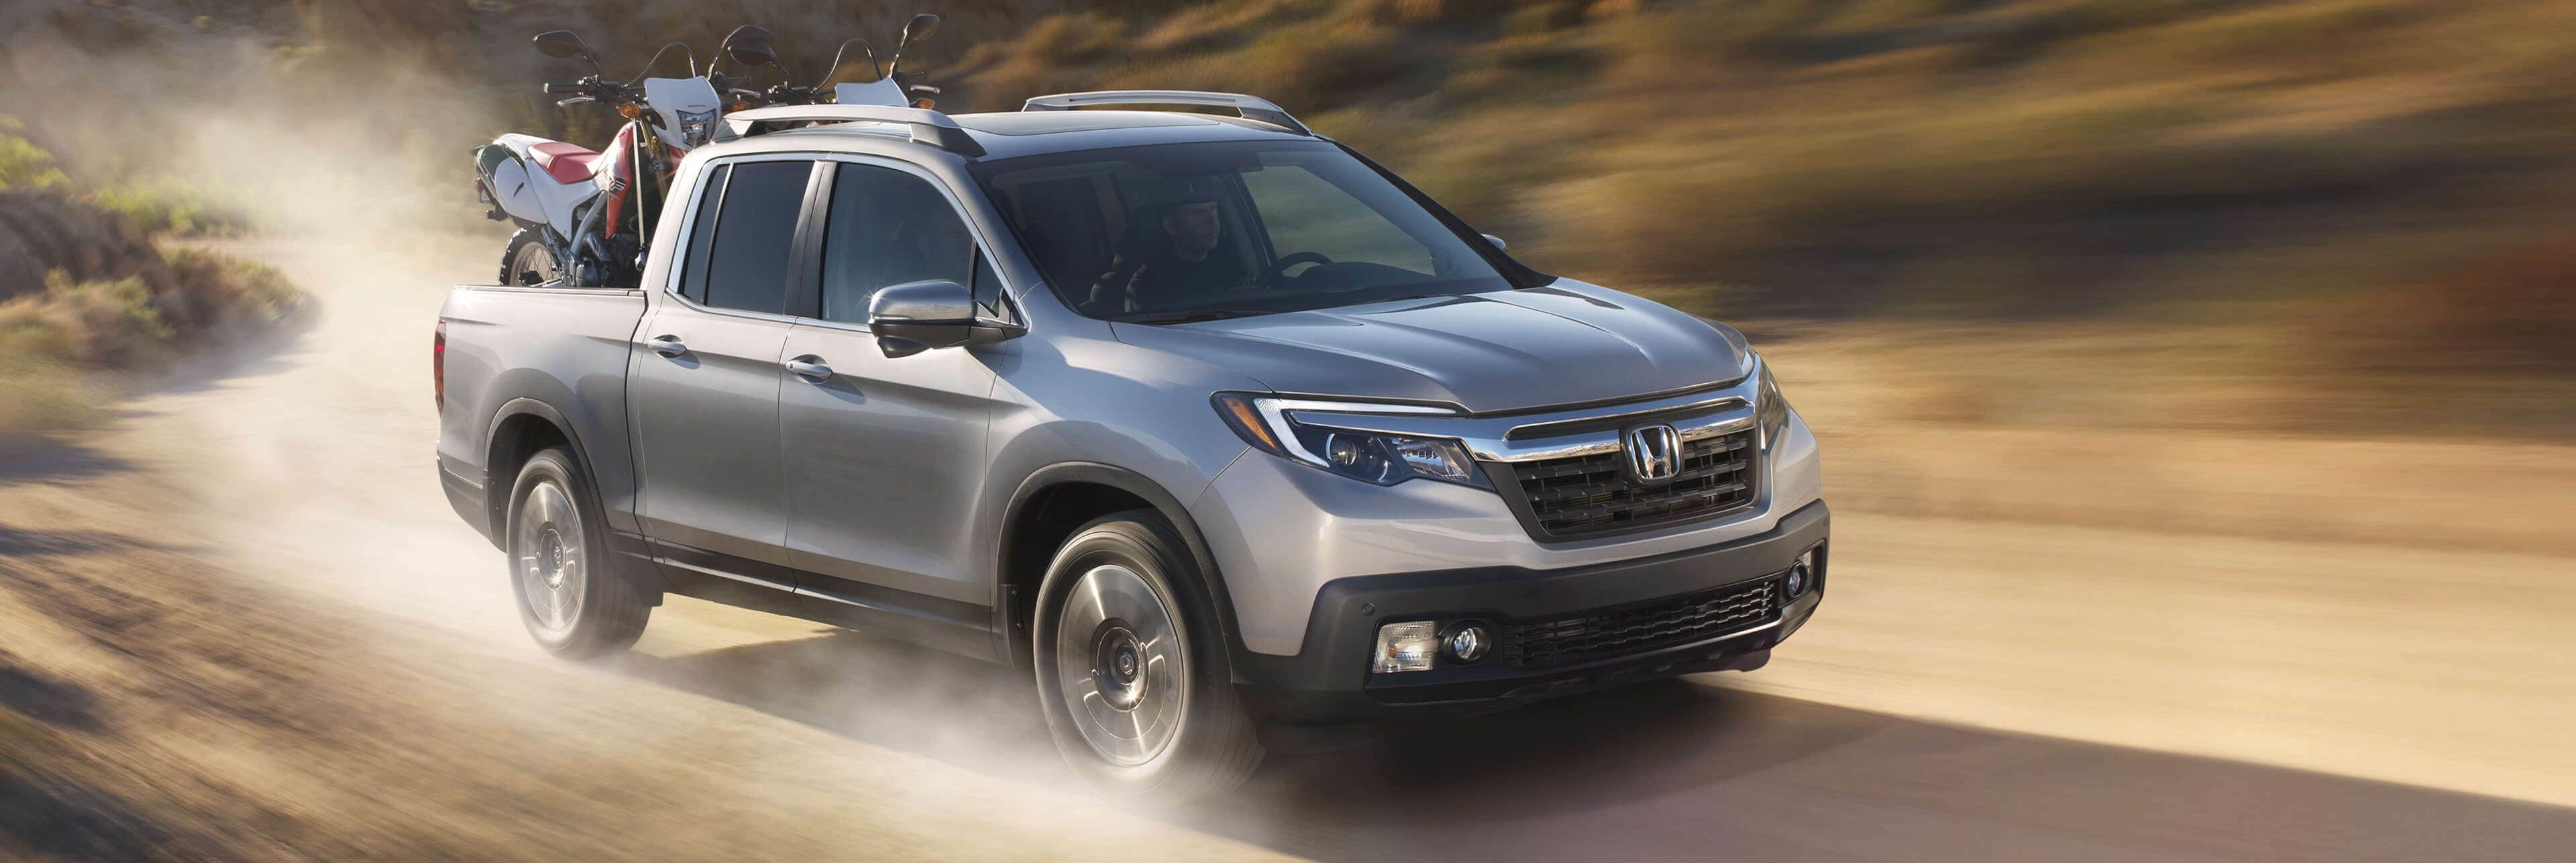 2019 Honda Ridgeline driving on a dusty country road